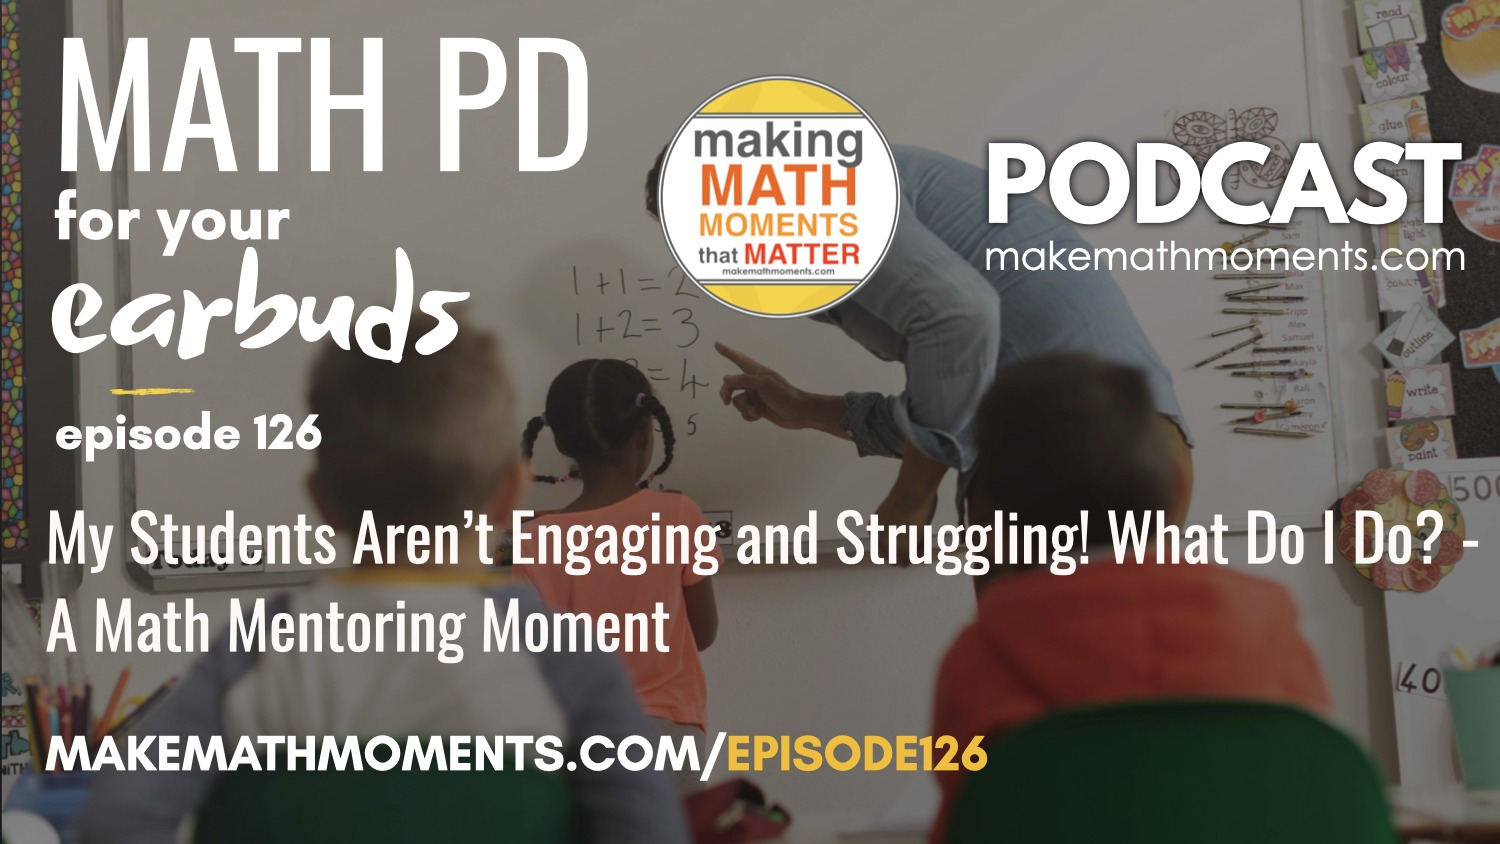 Episode #126: My Students Aren't Engaging and Struggling! What Do I Do? – A Math Mentoring Moment